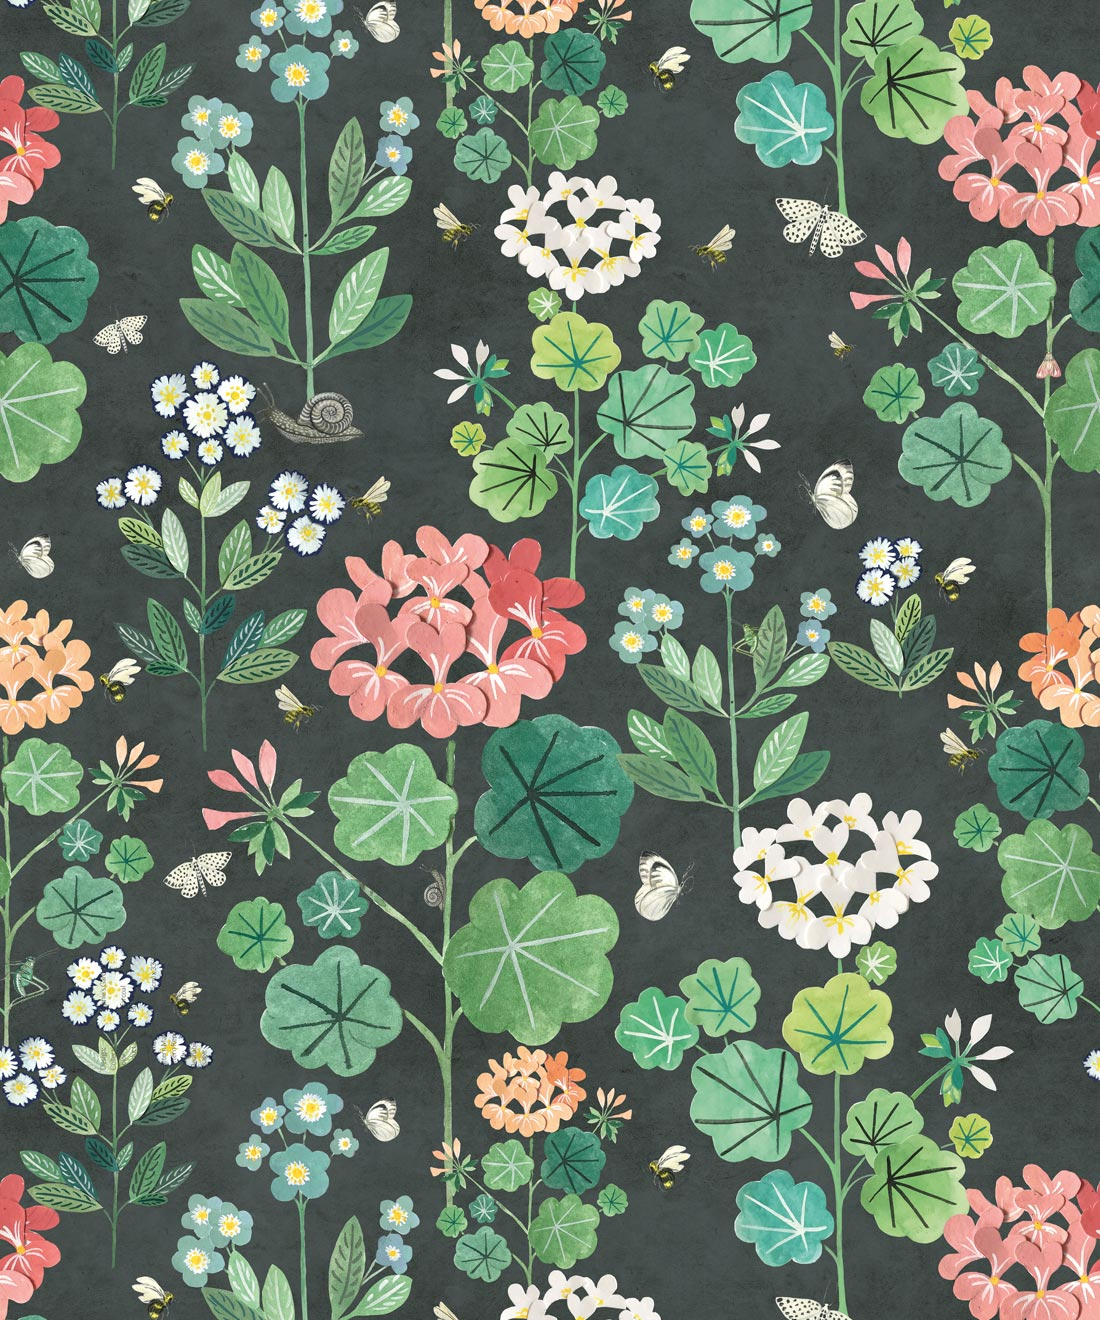 Sophie's Garden Wallpaper